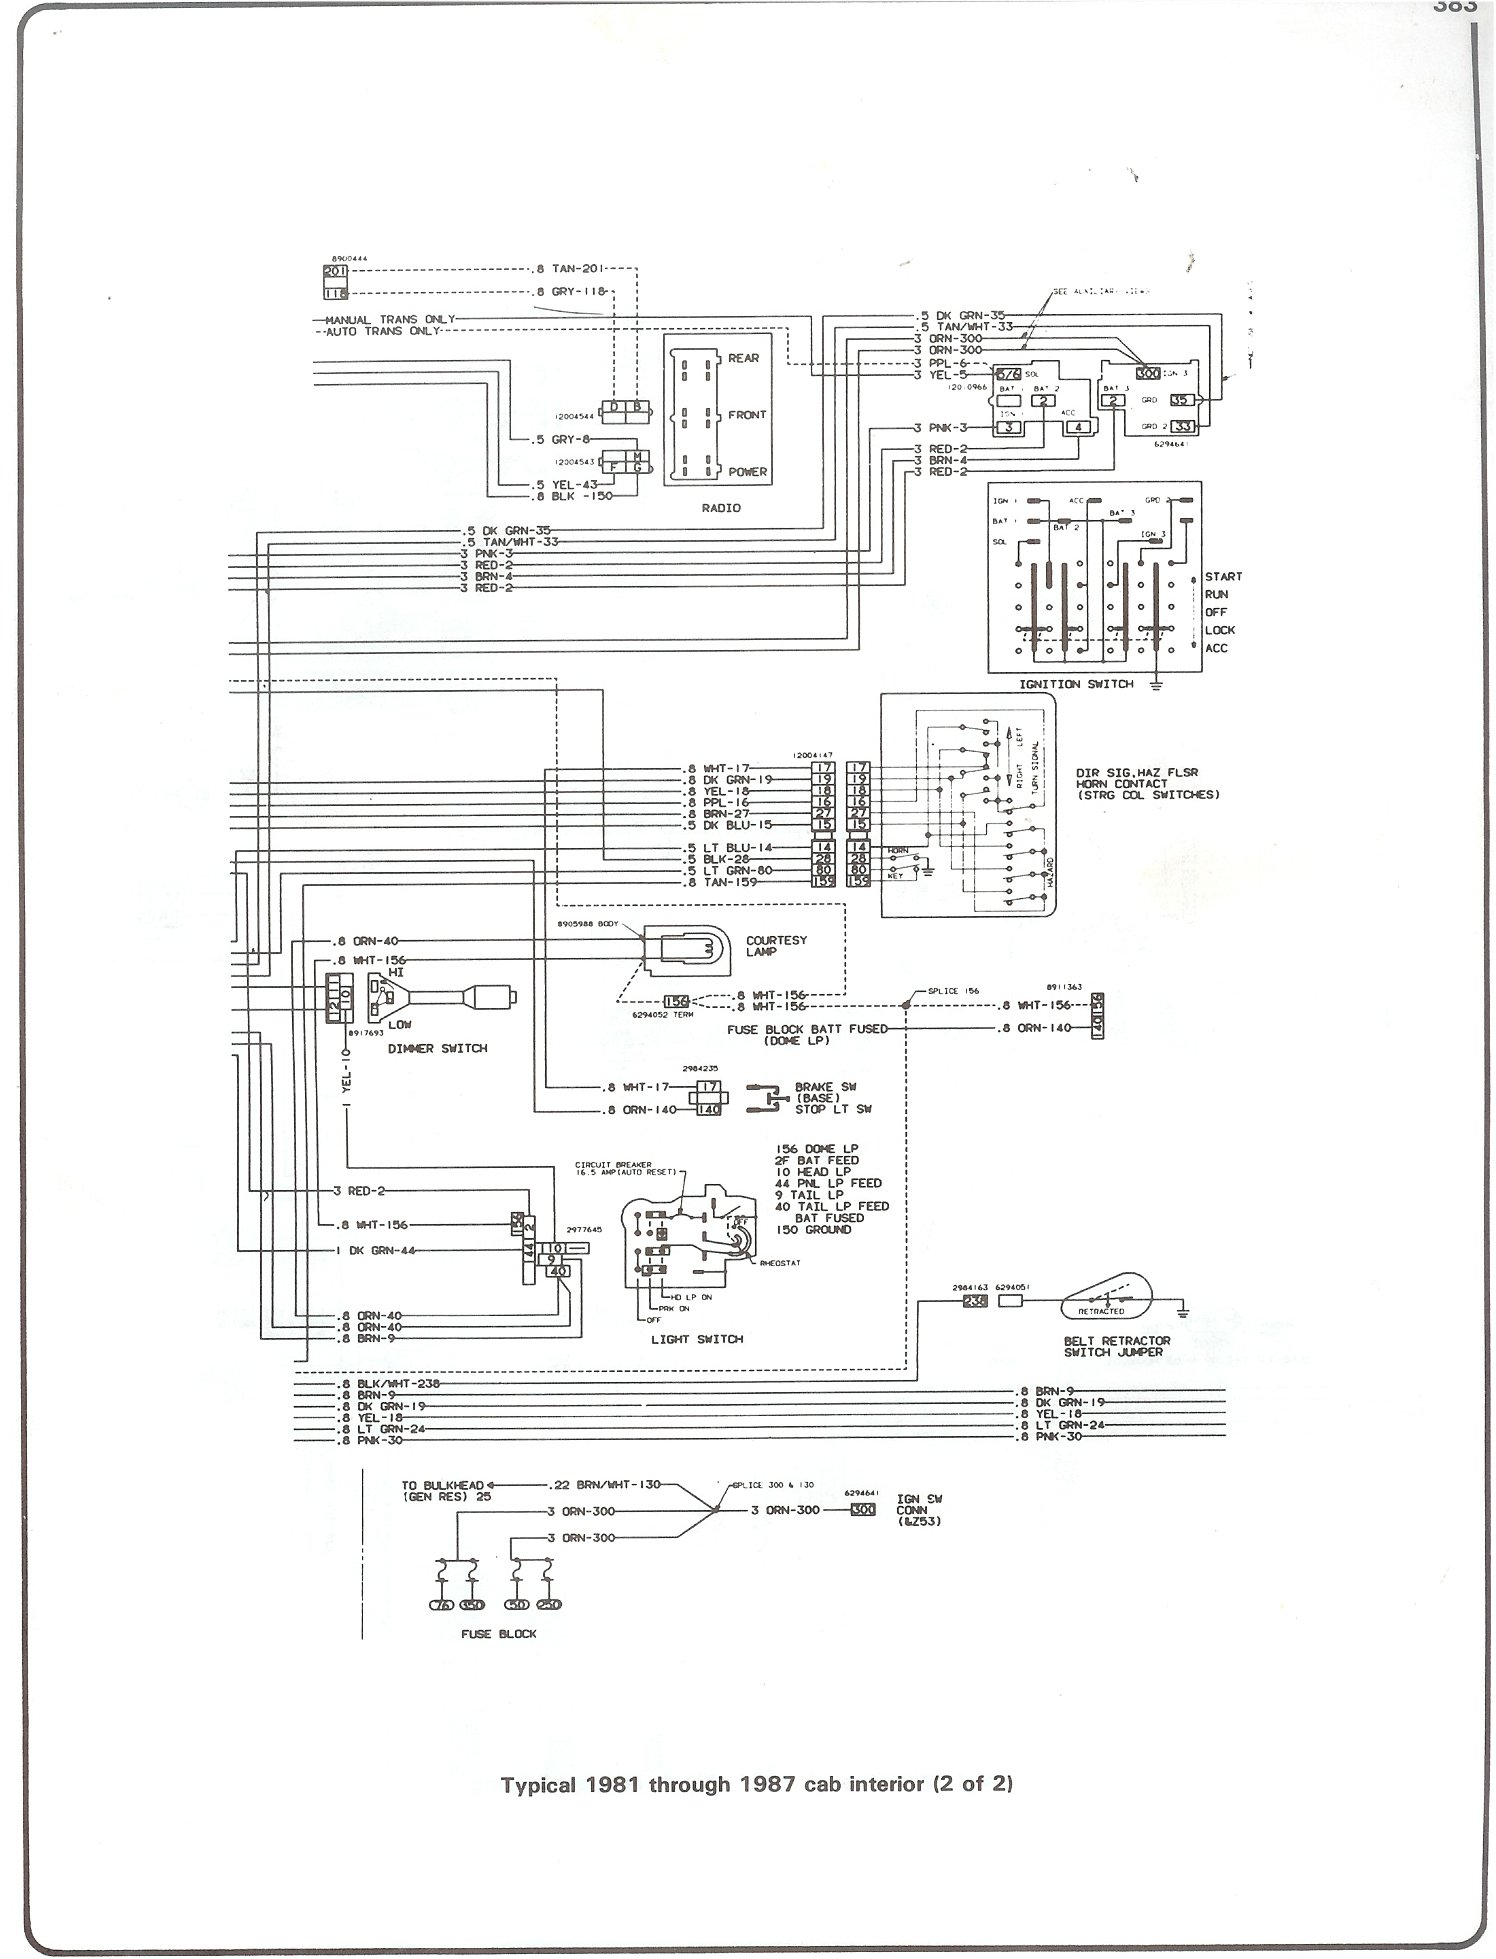 81 87_cab_inter_pg2 complete 73 87 wiring diagrams 1979 chevy truck wiring diagram at alyssarenee.co